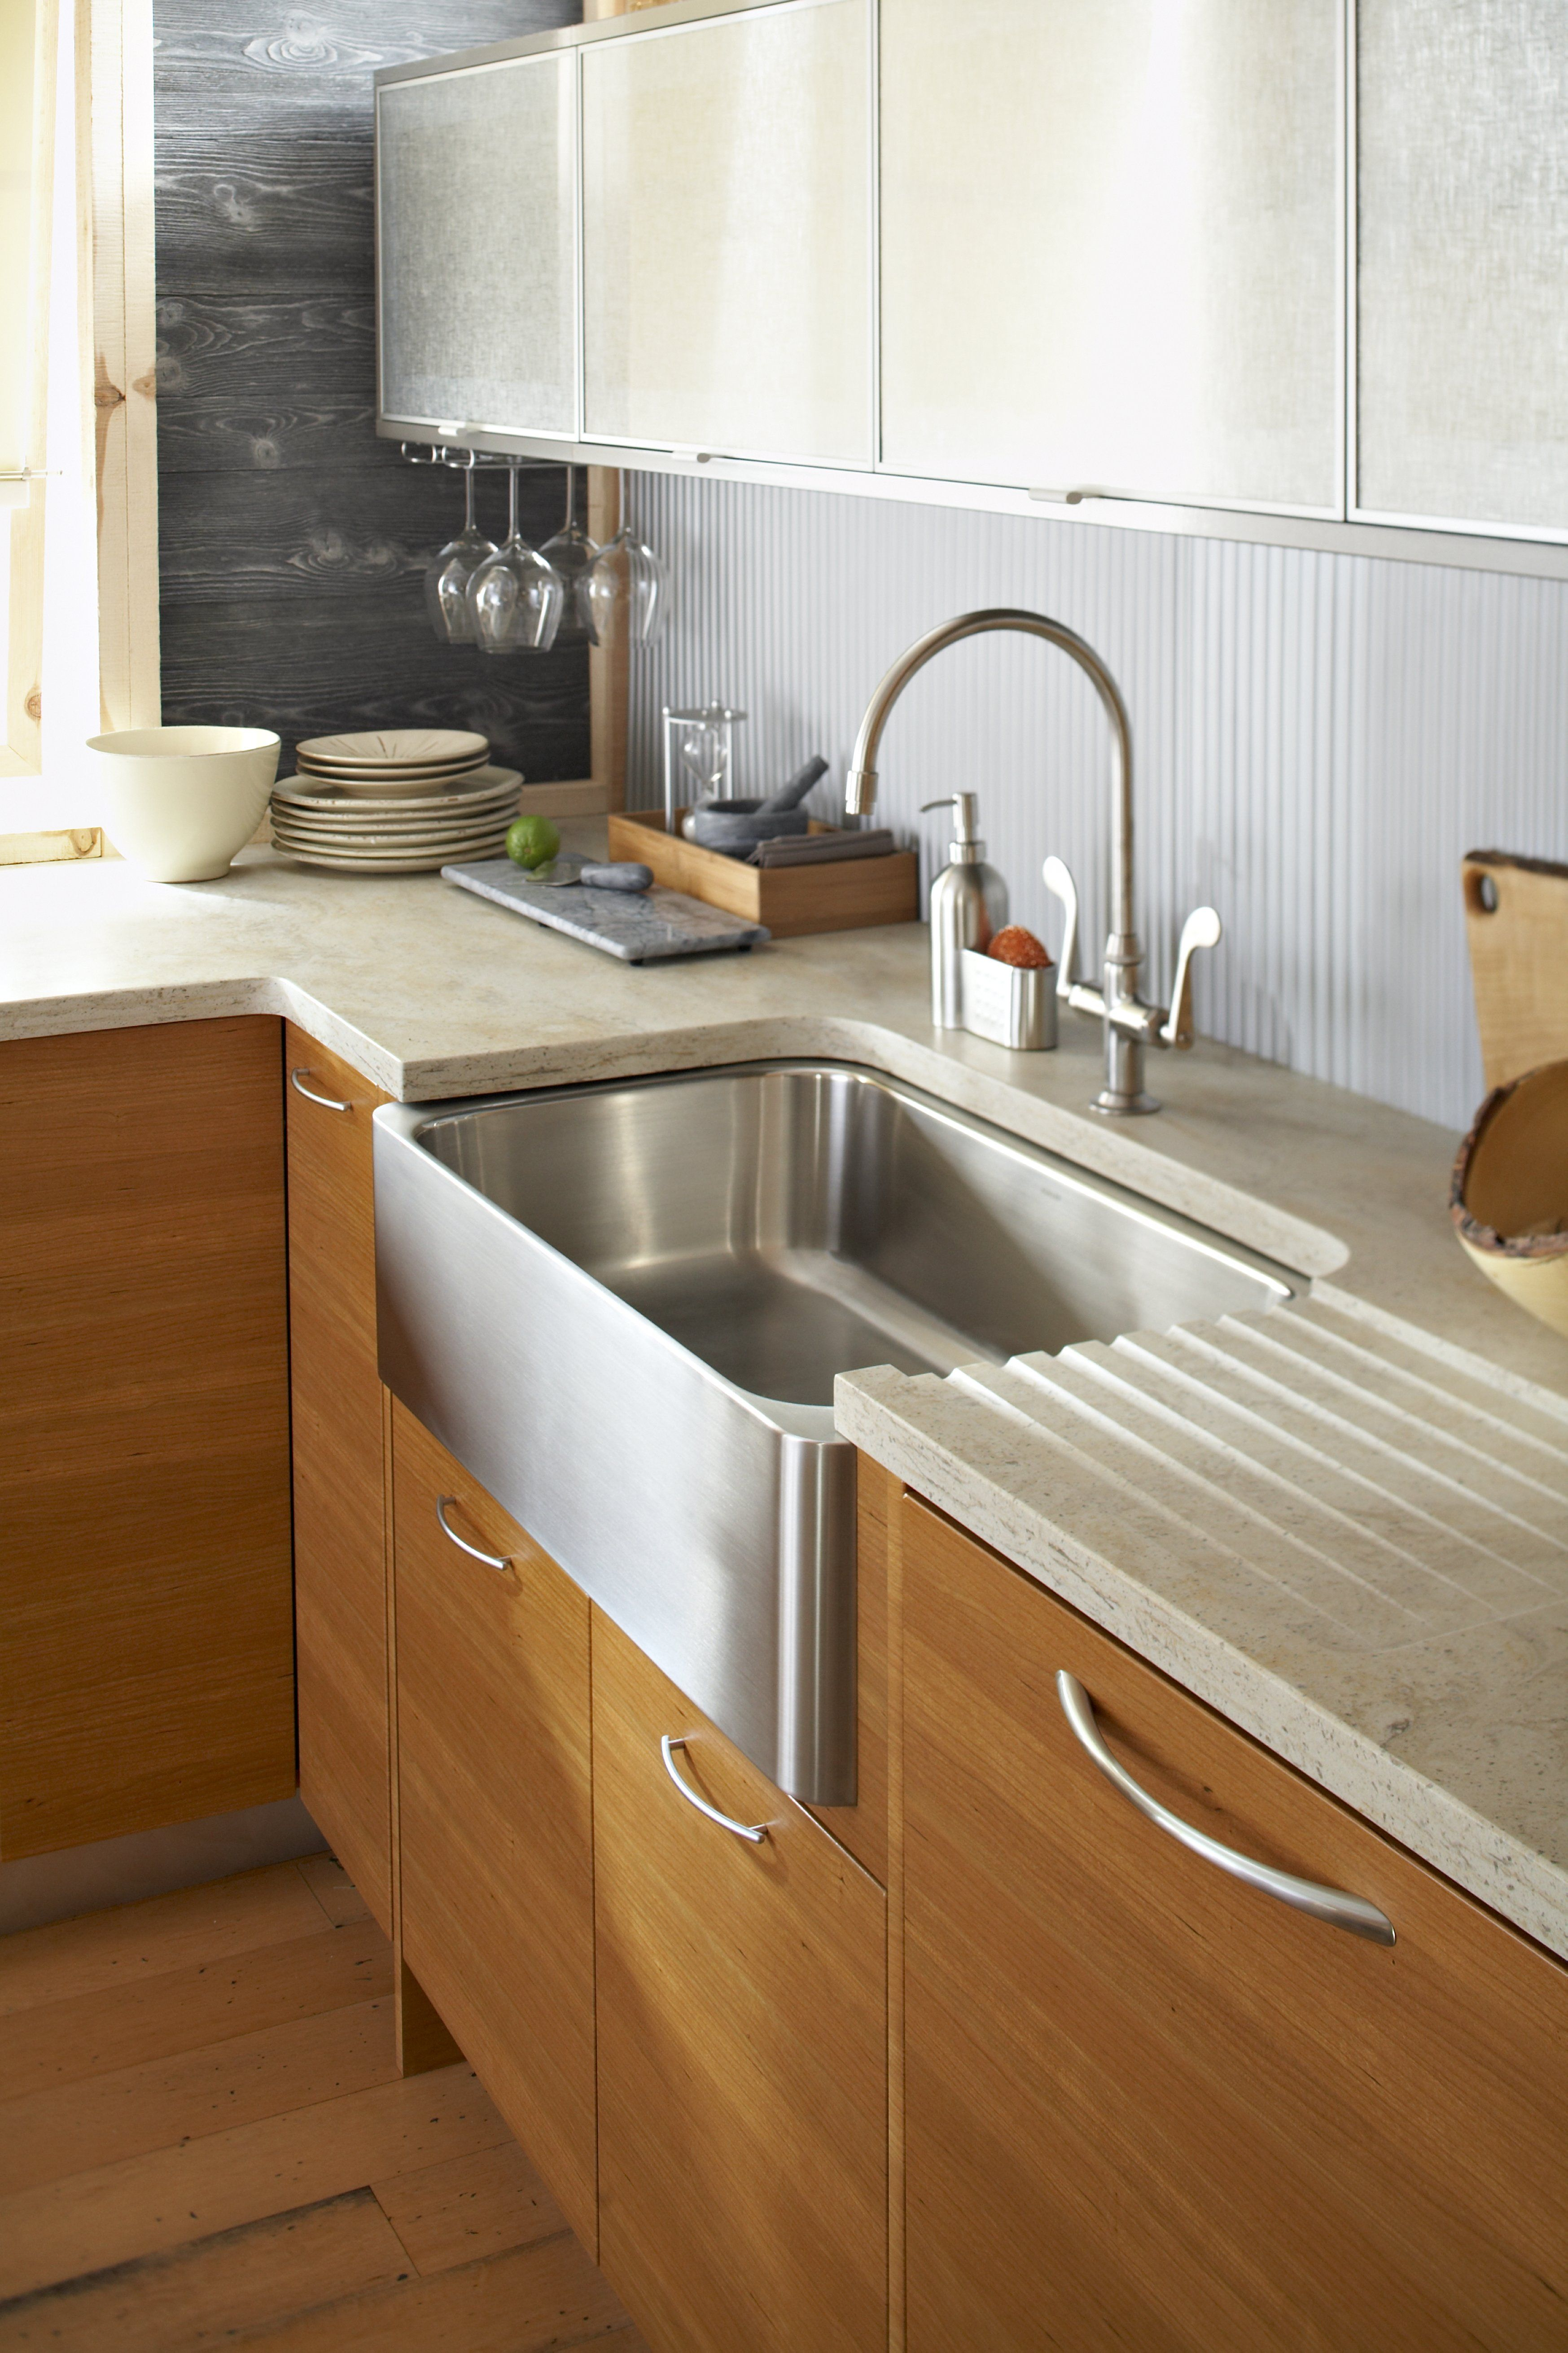 Colors Of Corian Countertops Corian Burl Contemporary Kitchens Countertops Midwest